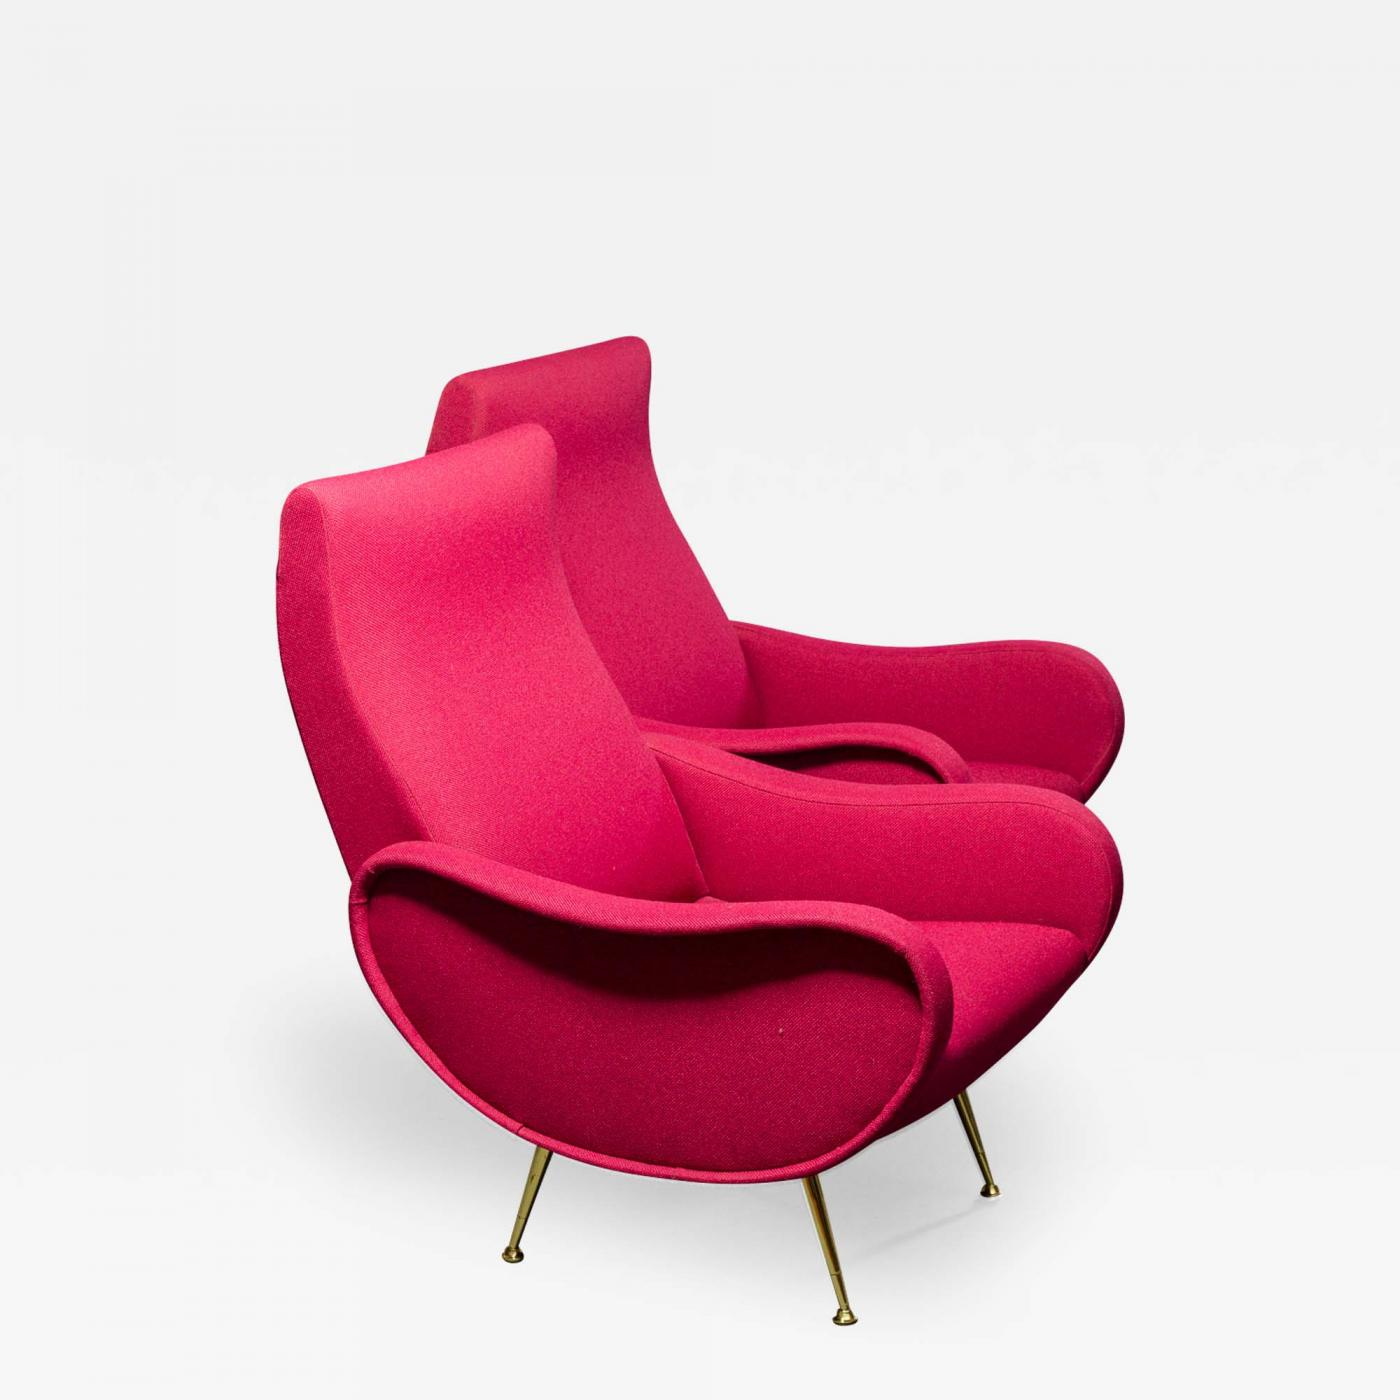 Charmant Listings / Furniture / Seating / Lounge Chairs